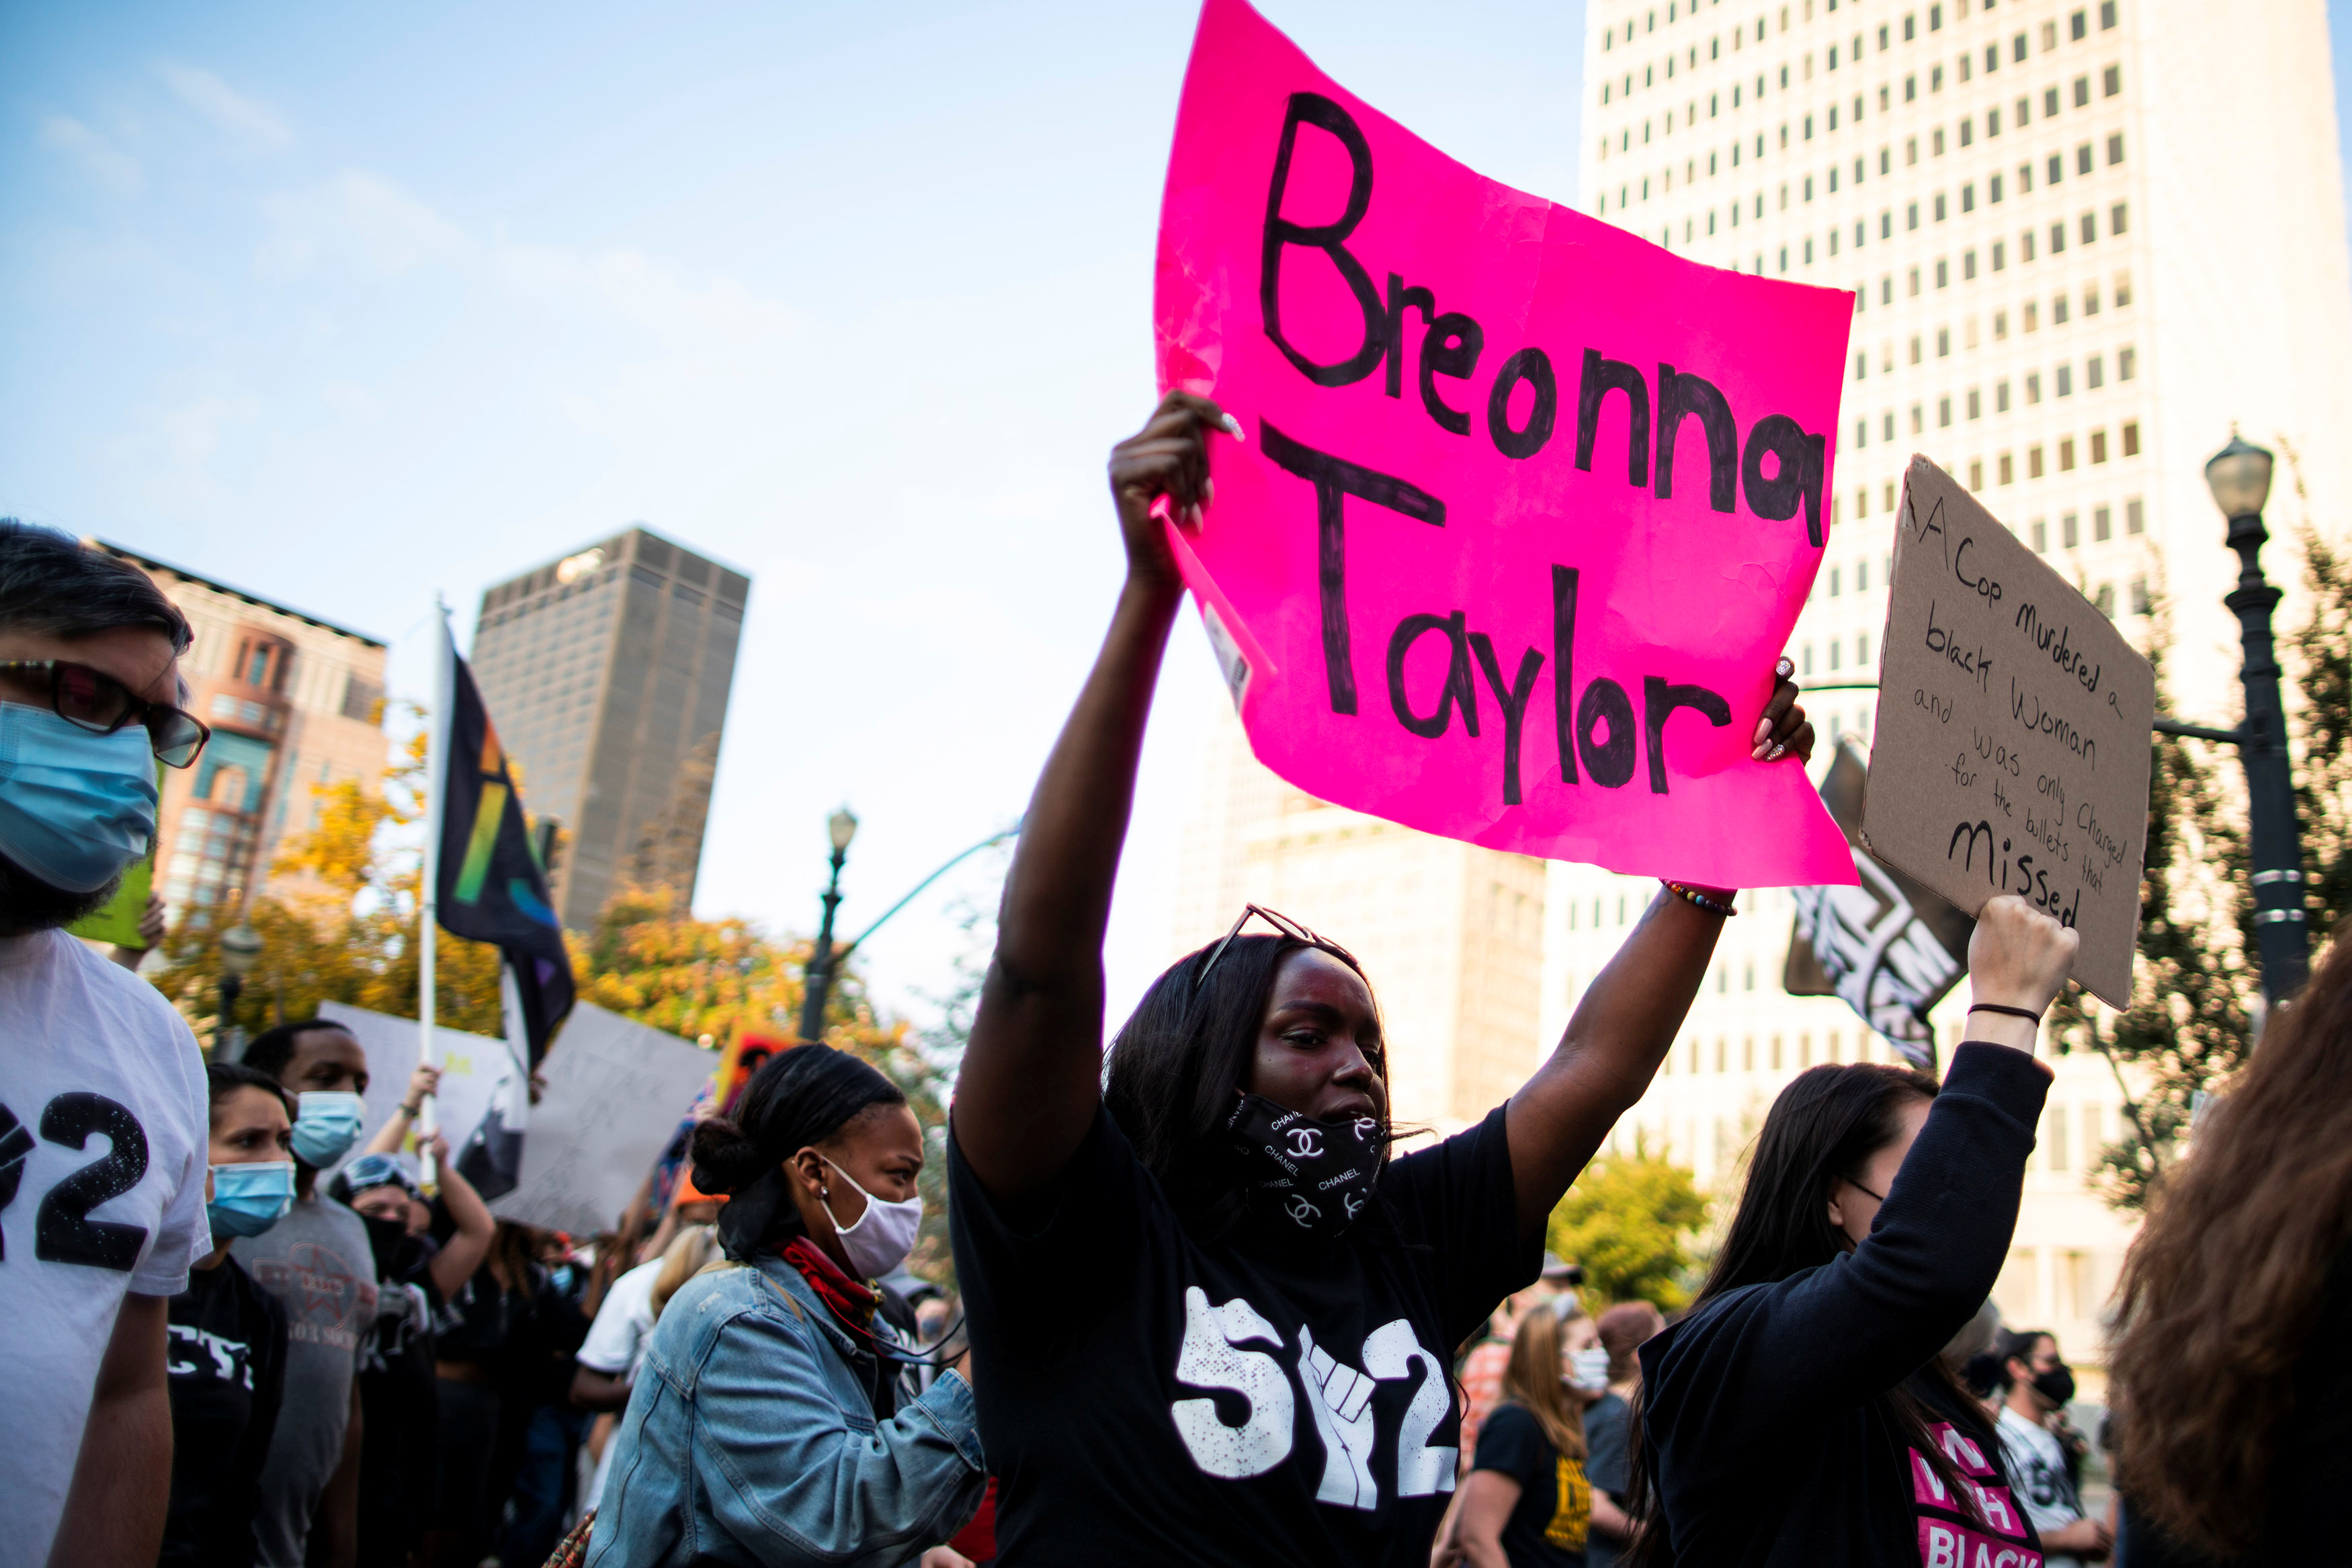 US cop whose injury led to shooting death of Breonna Taylor says protestors are misinformed